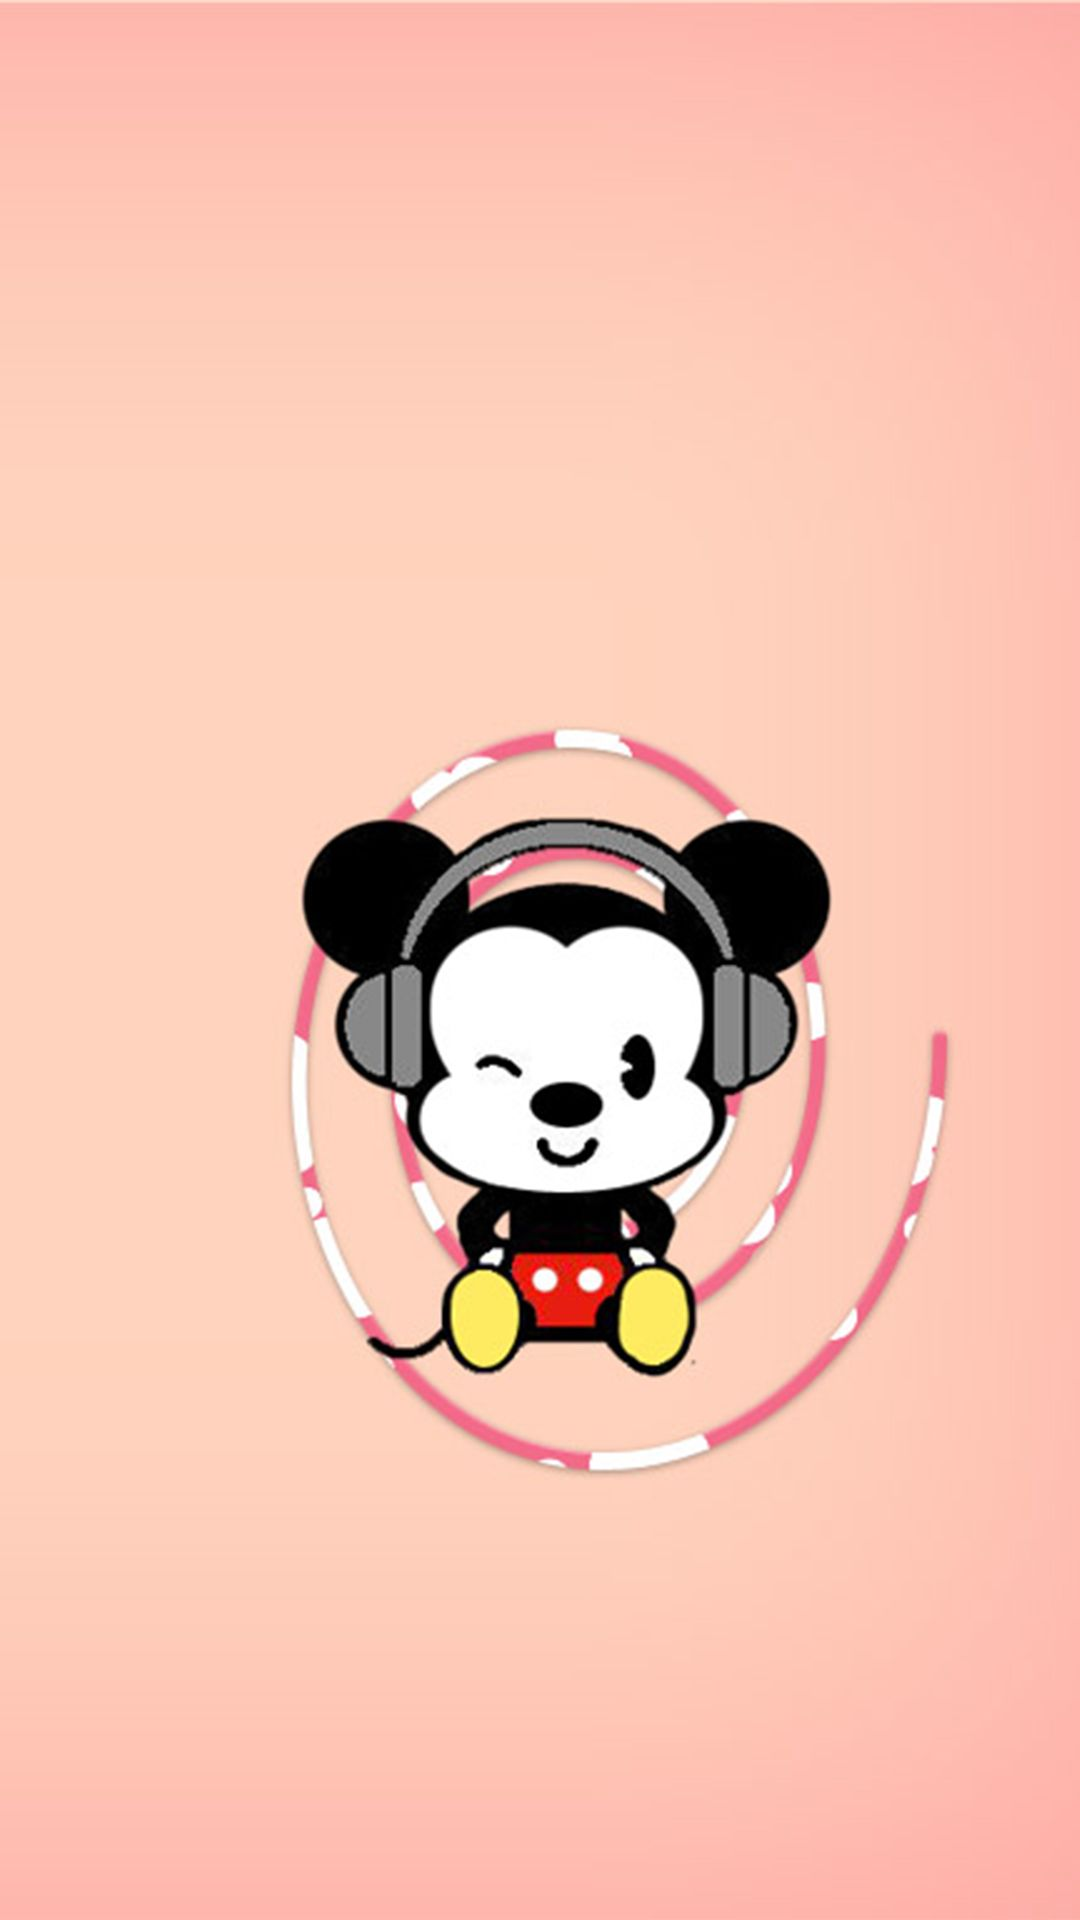 Mickey Mouse Wallpapers For IPhone Wallpaper/phone